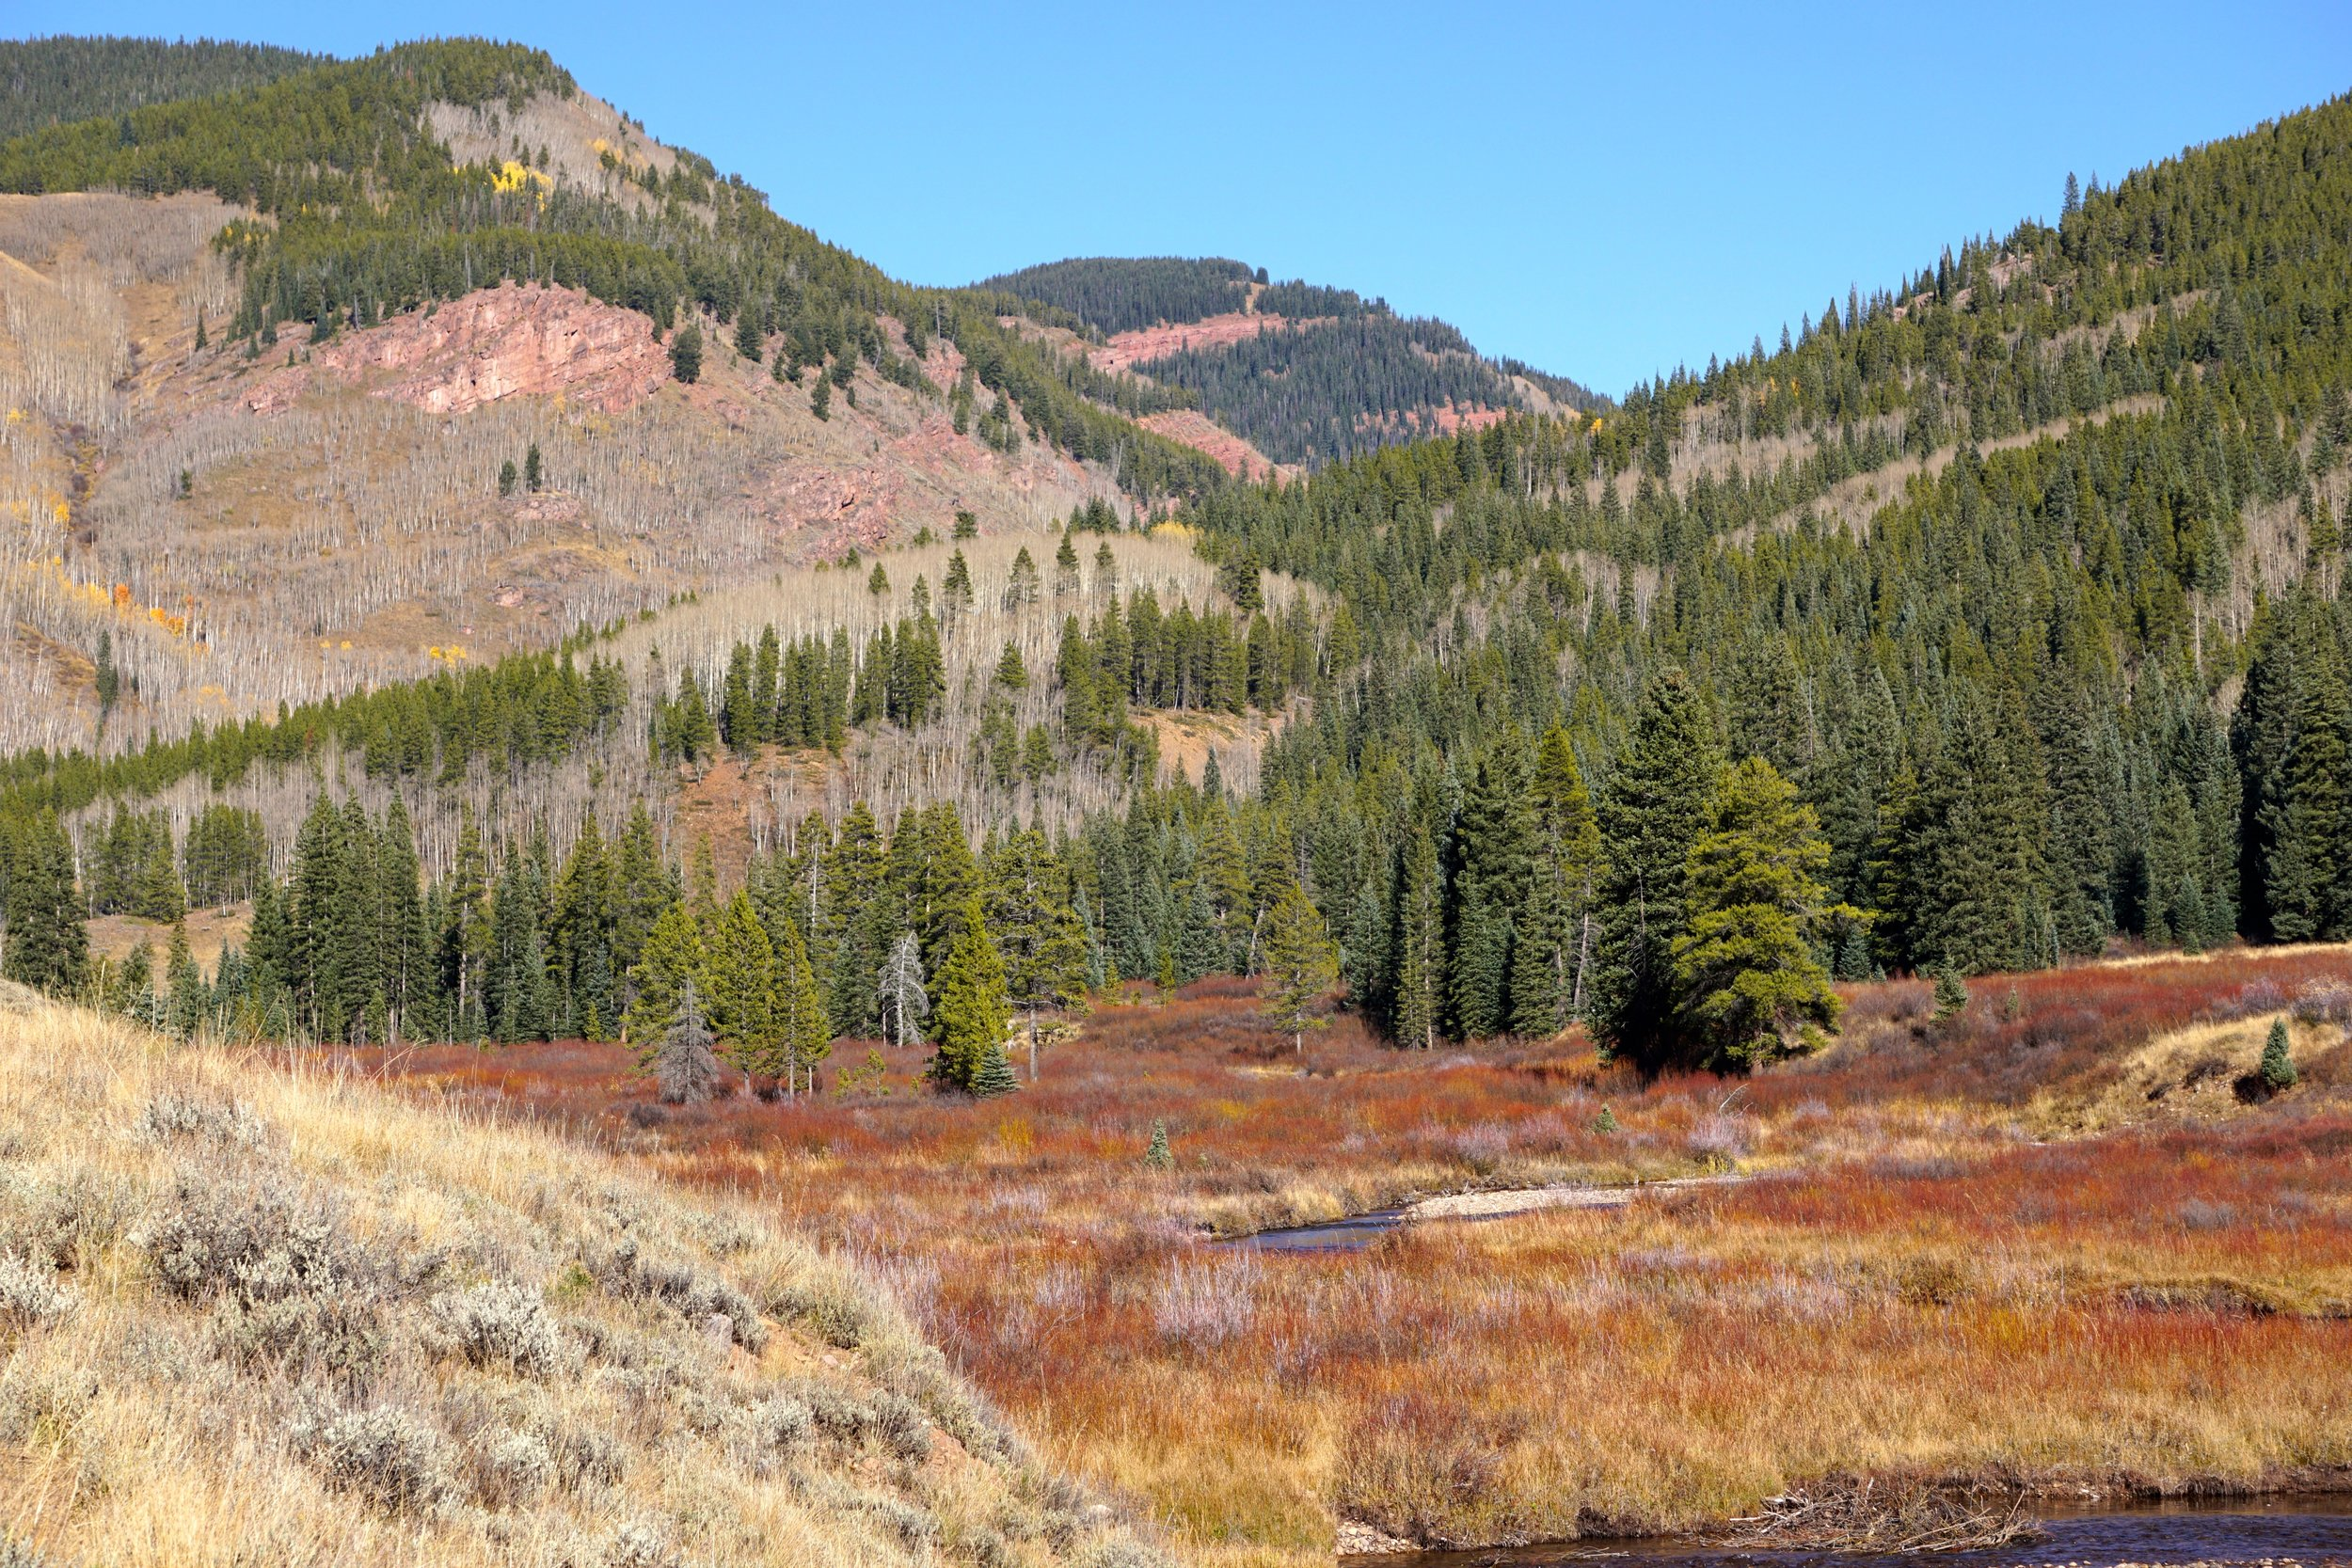 Cement Creek area is proposed for a combination of special management areas and wilderness to maintain access for current recreation and ensure a high quality recreation experience, while protecting areas that see very little non-wilderness uses.